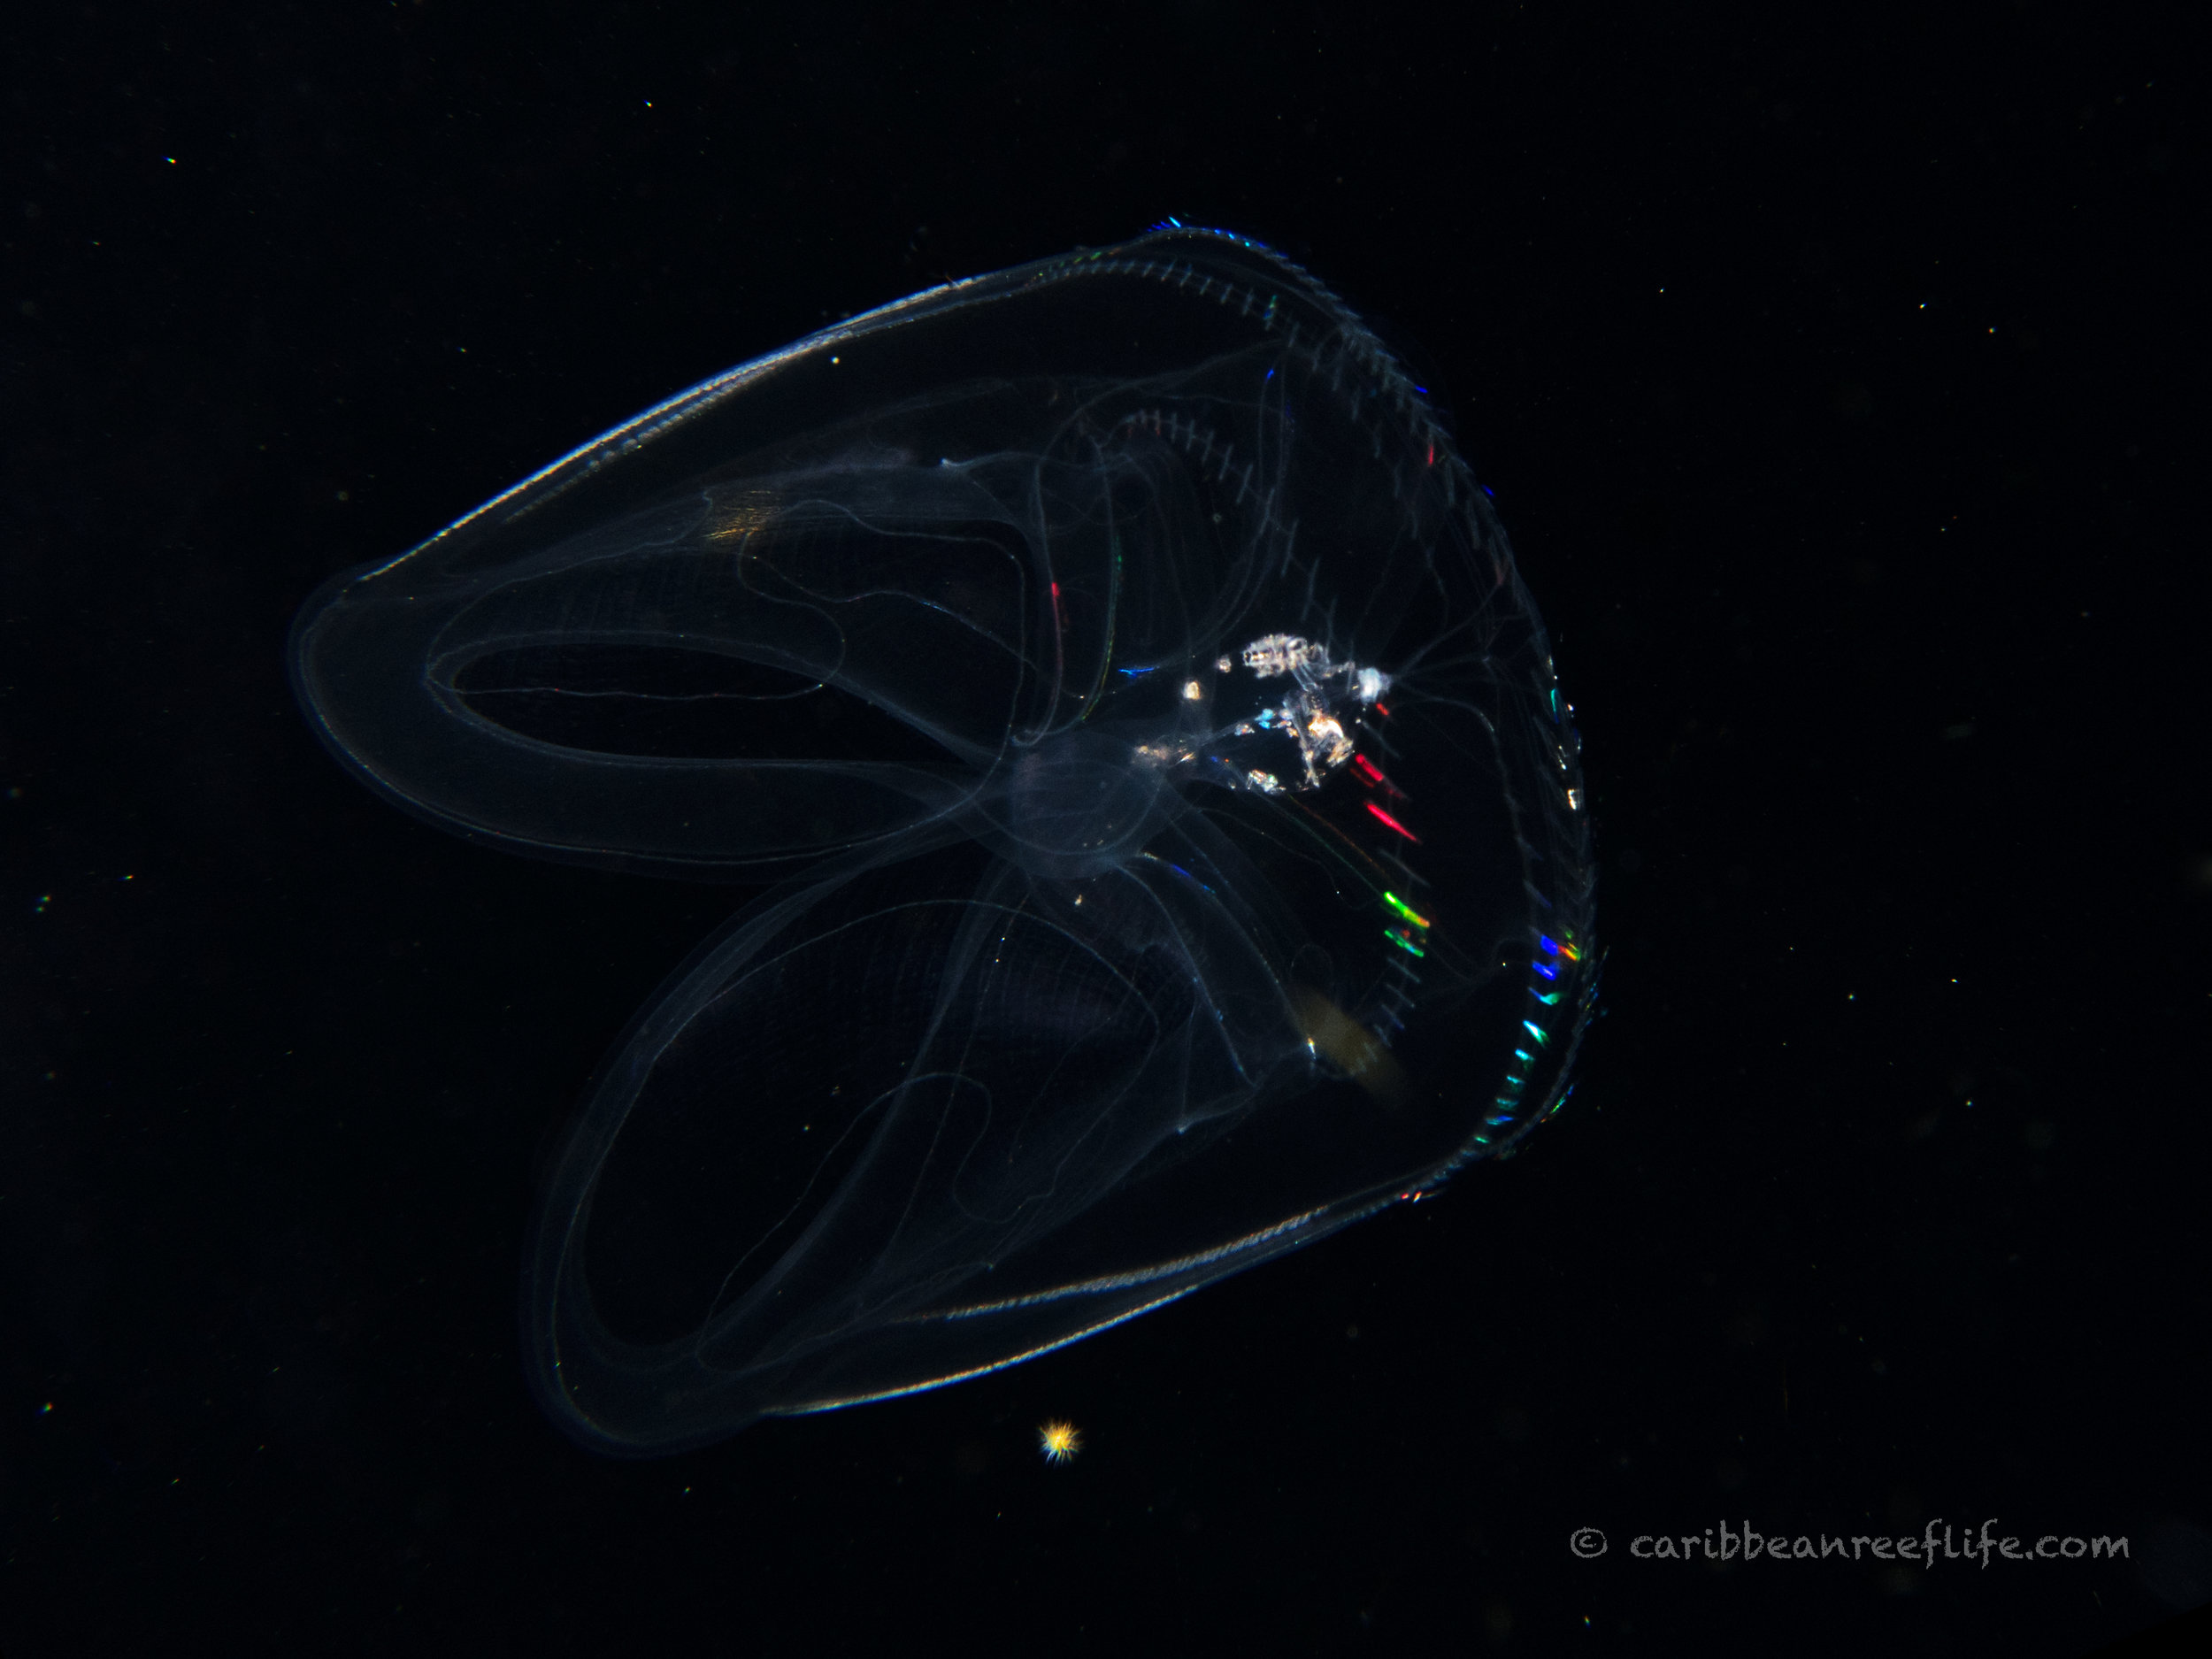 Northern Comb Jelly (Ocyropsis crystallina)